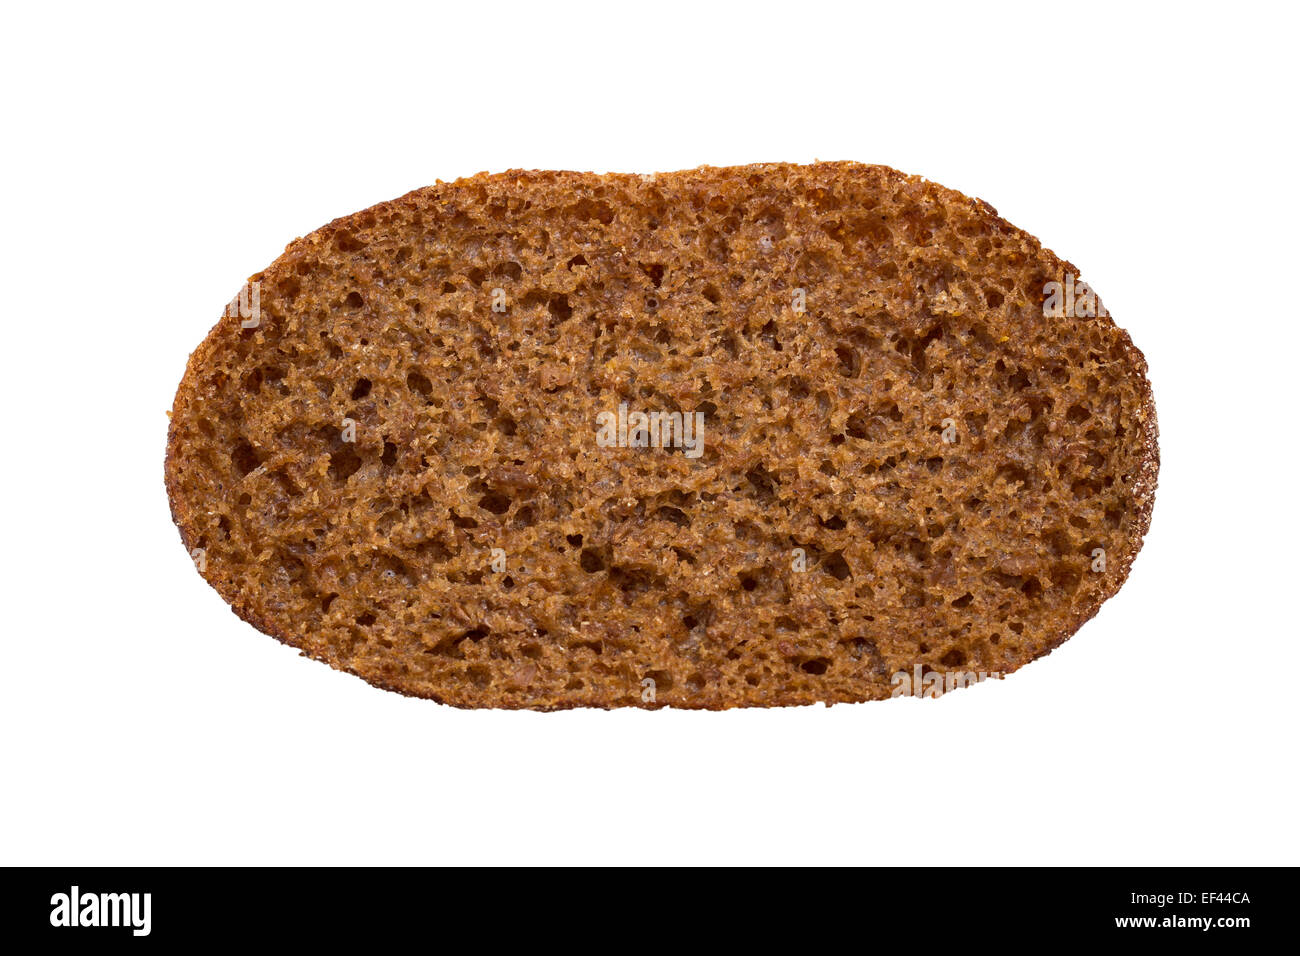 Traditional Finnish rye bread, viewed from above, isolated on white background - Stock Image